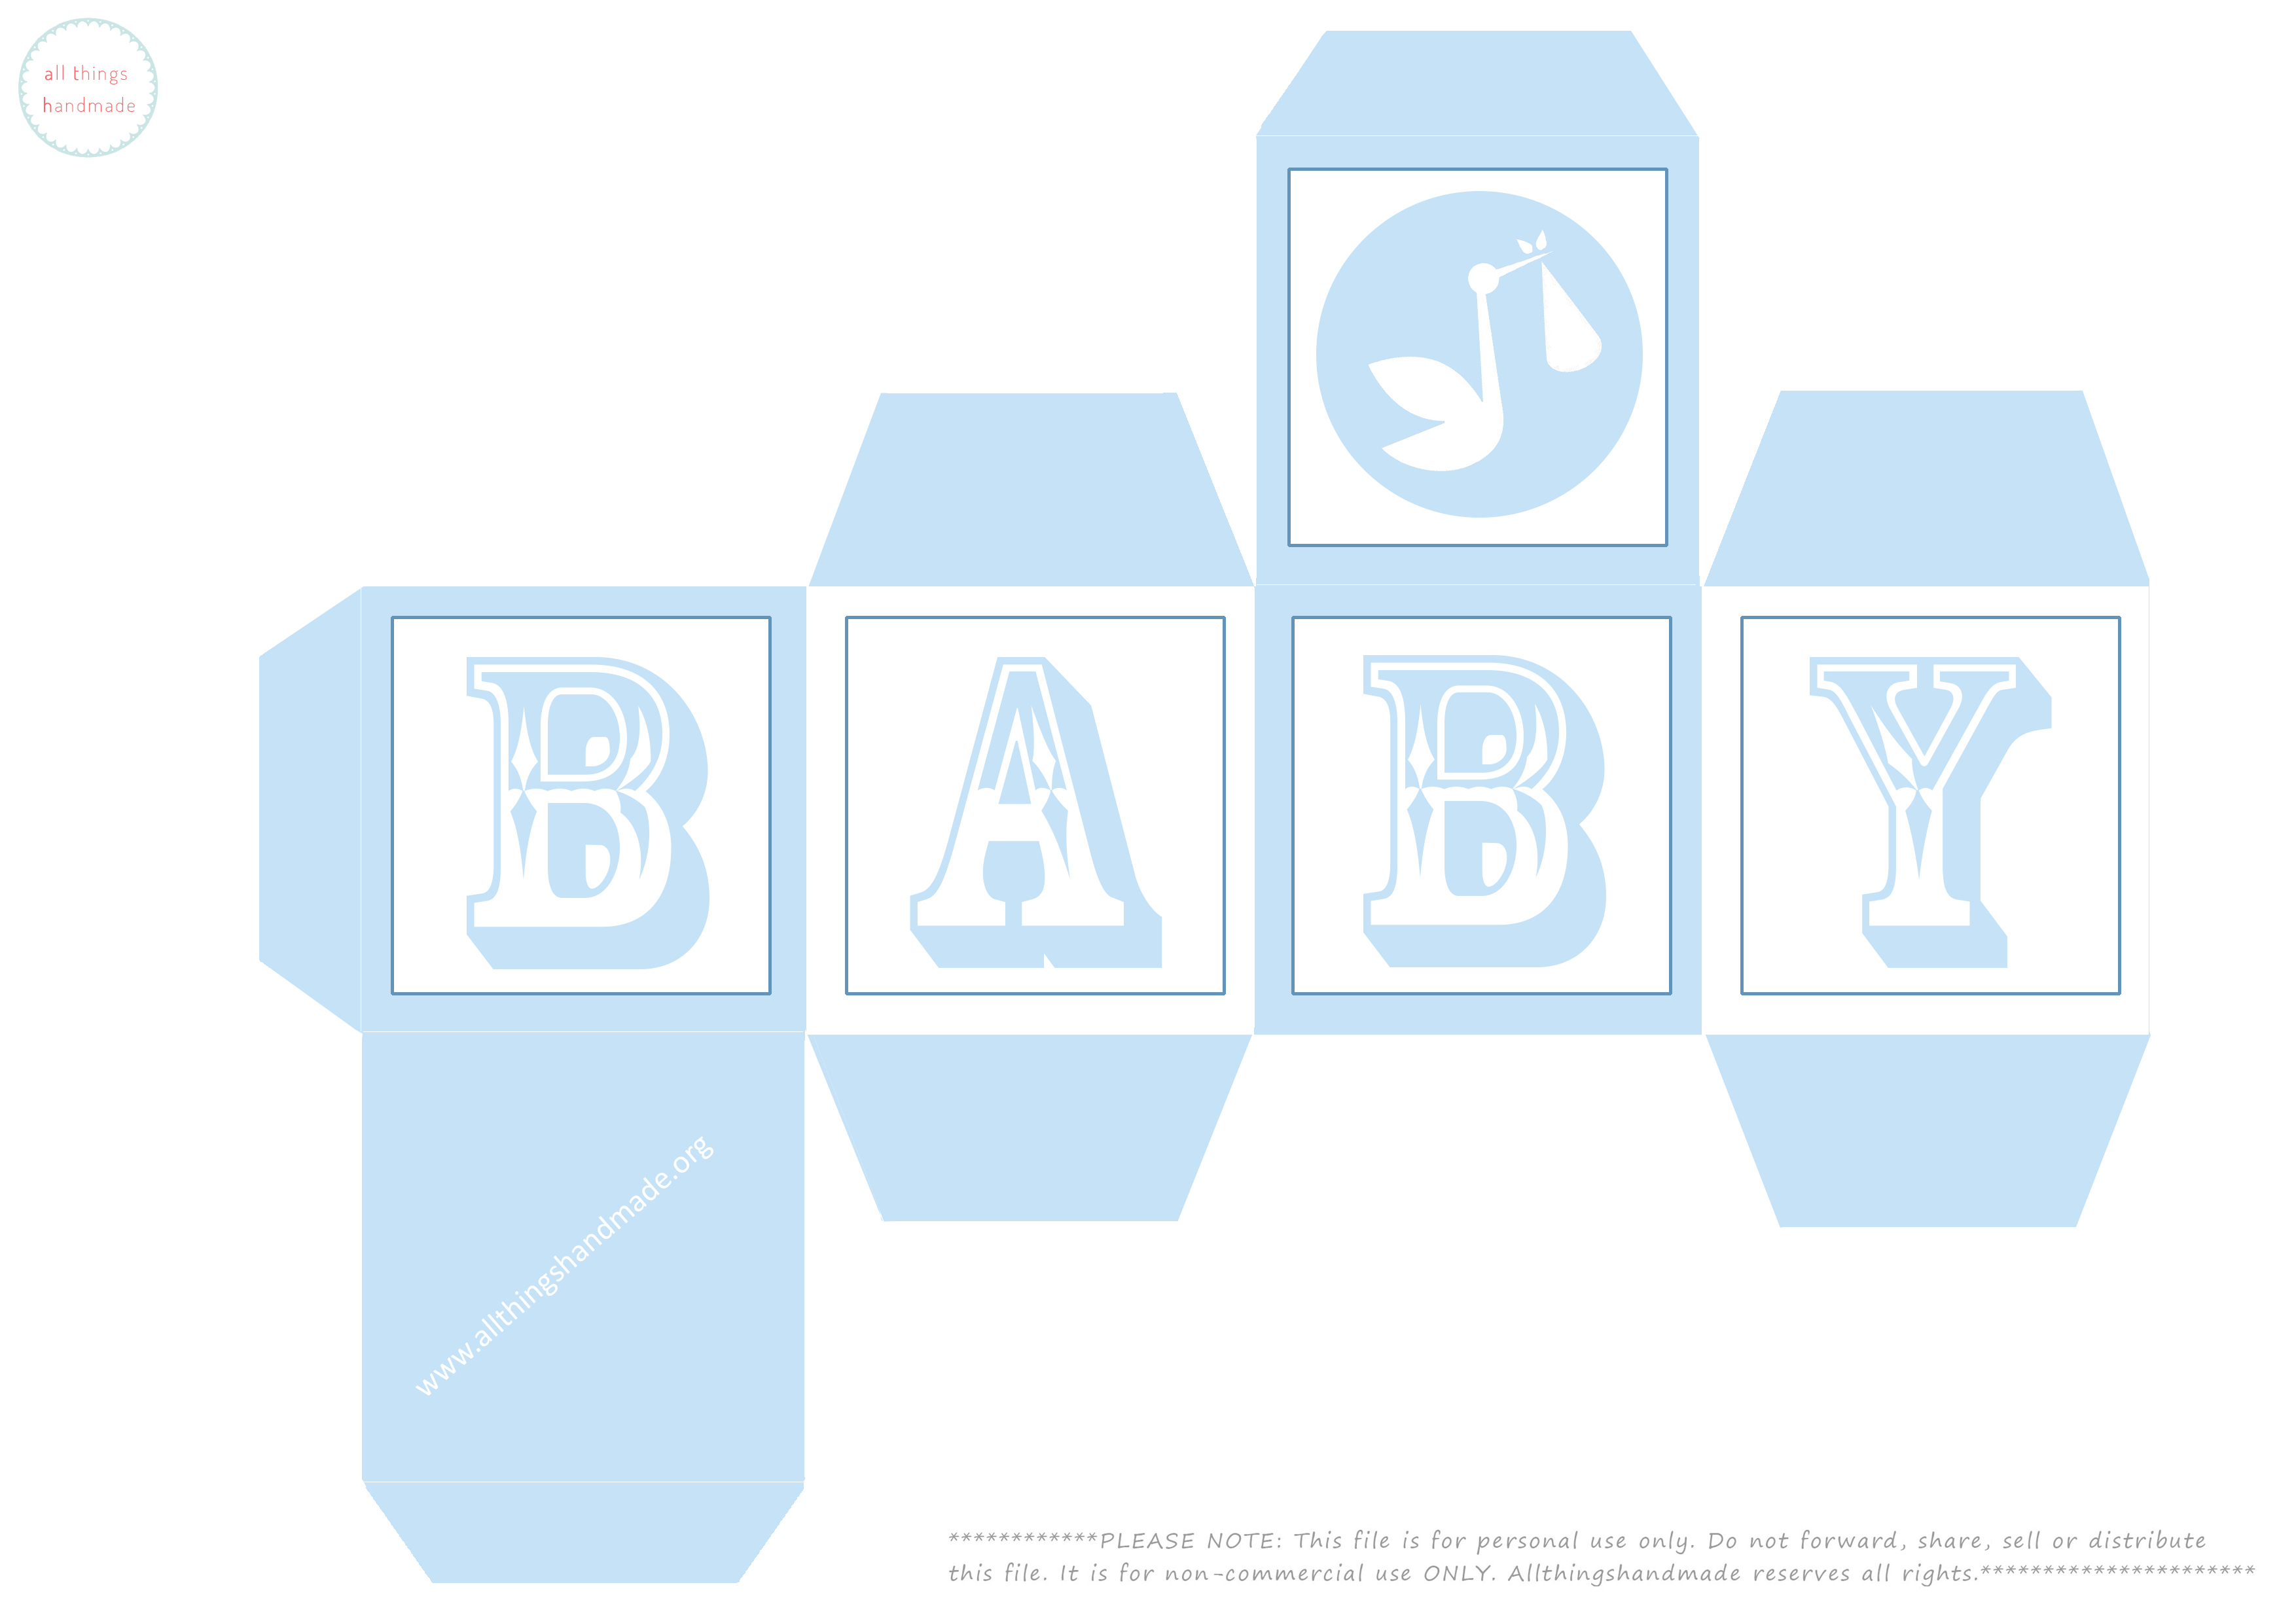 Baby blocks images